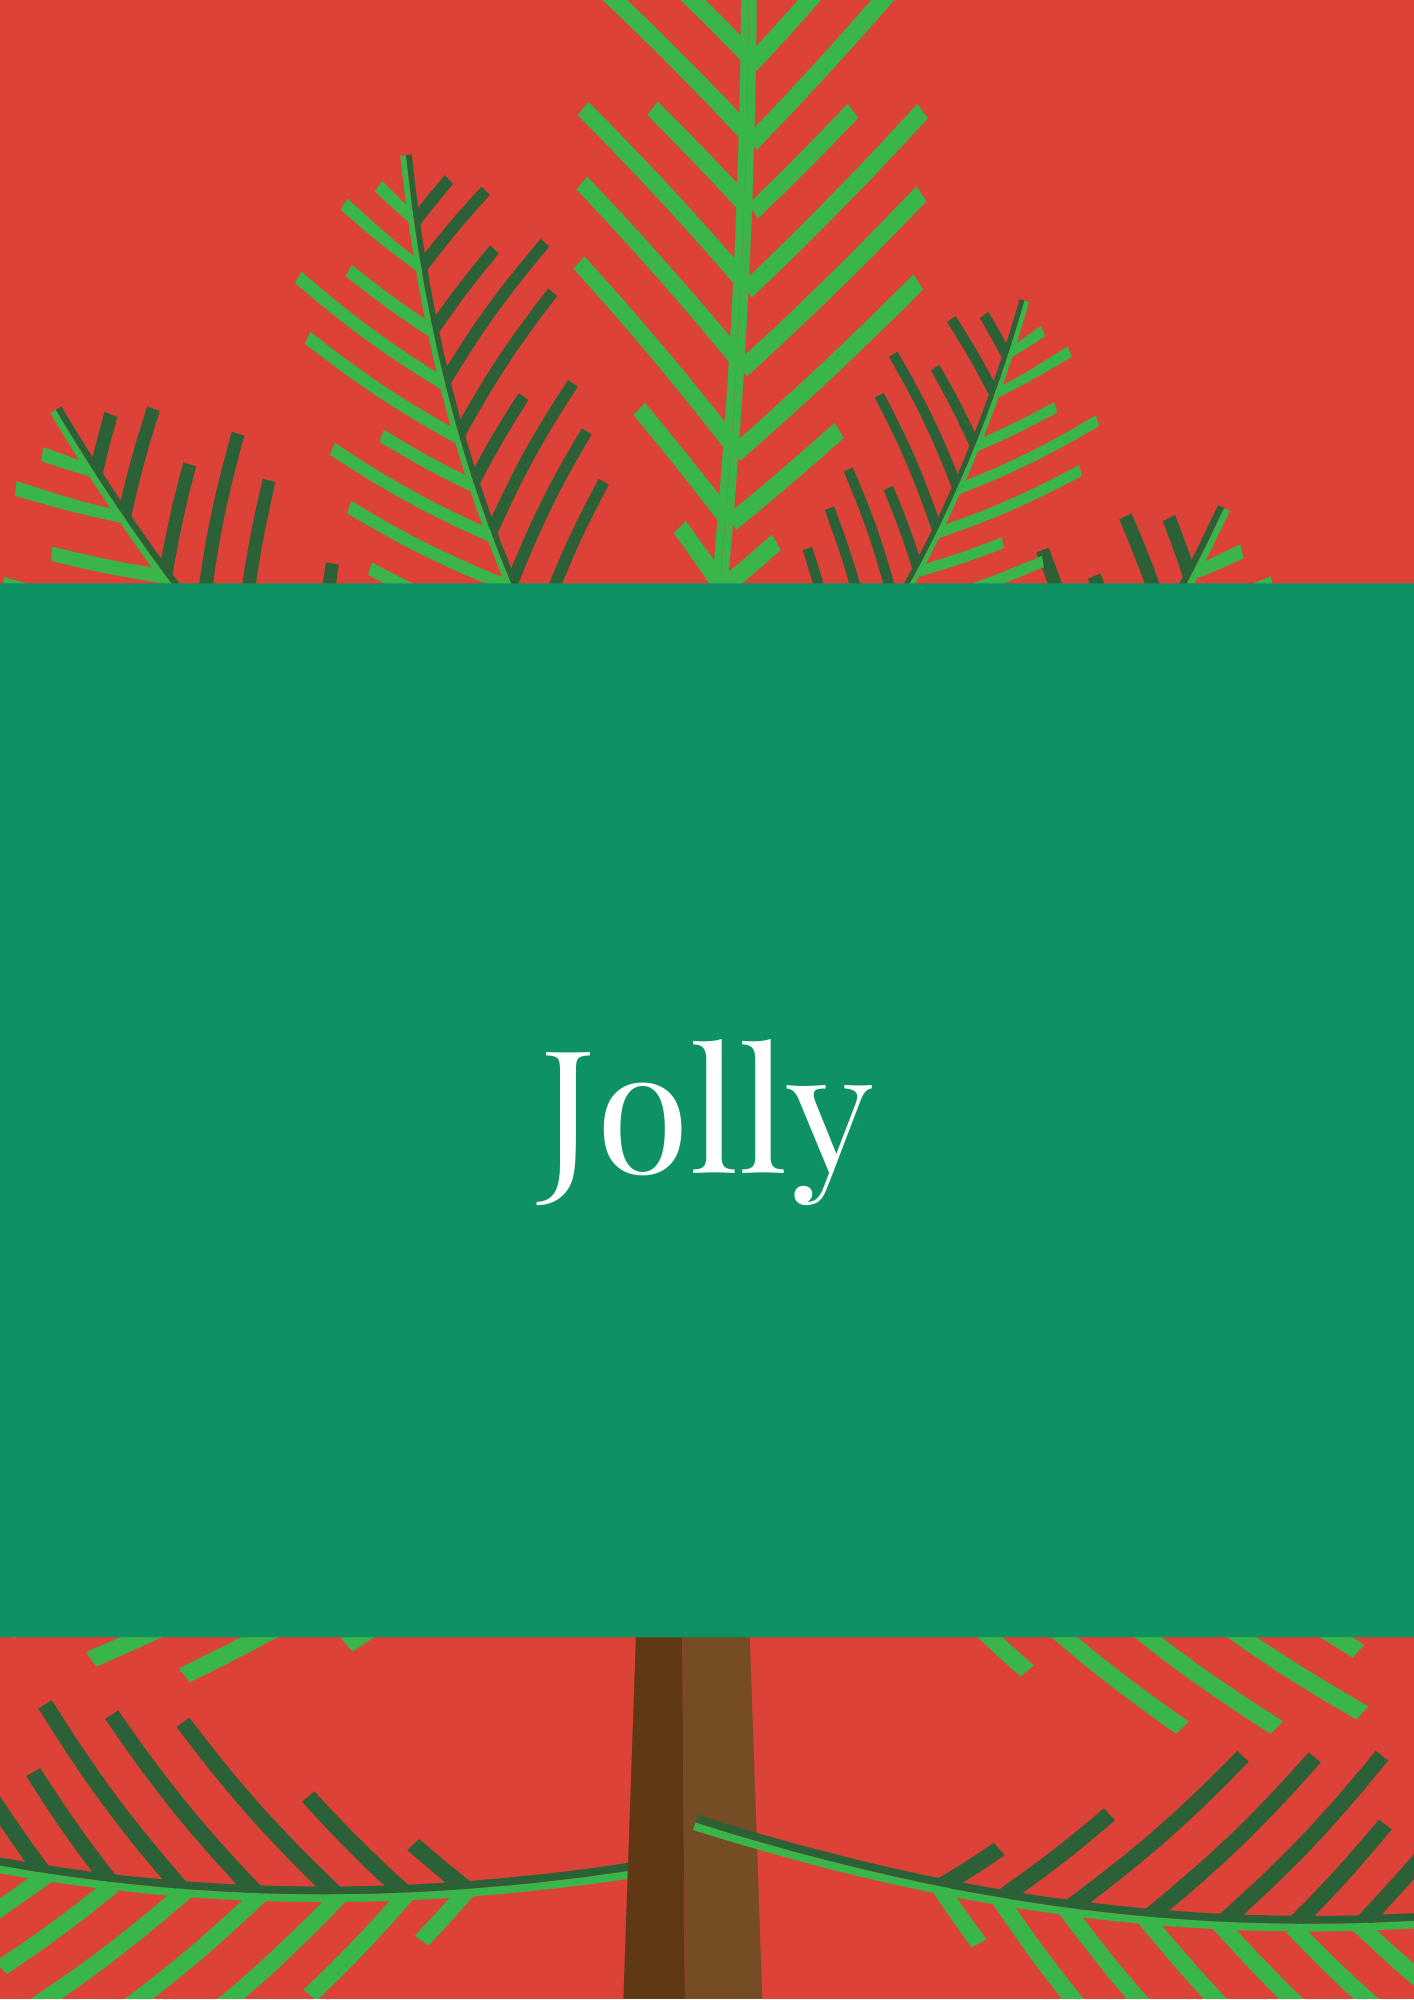 Jolly Elf Names